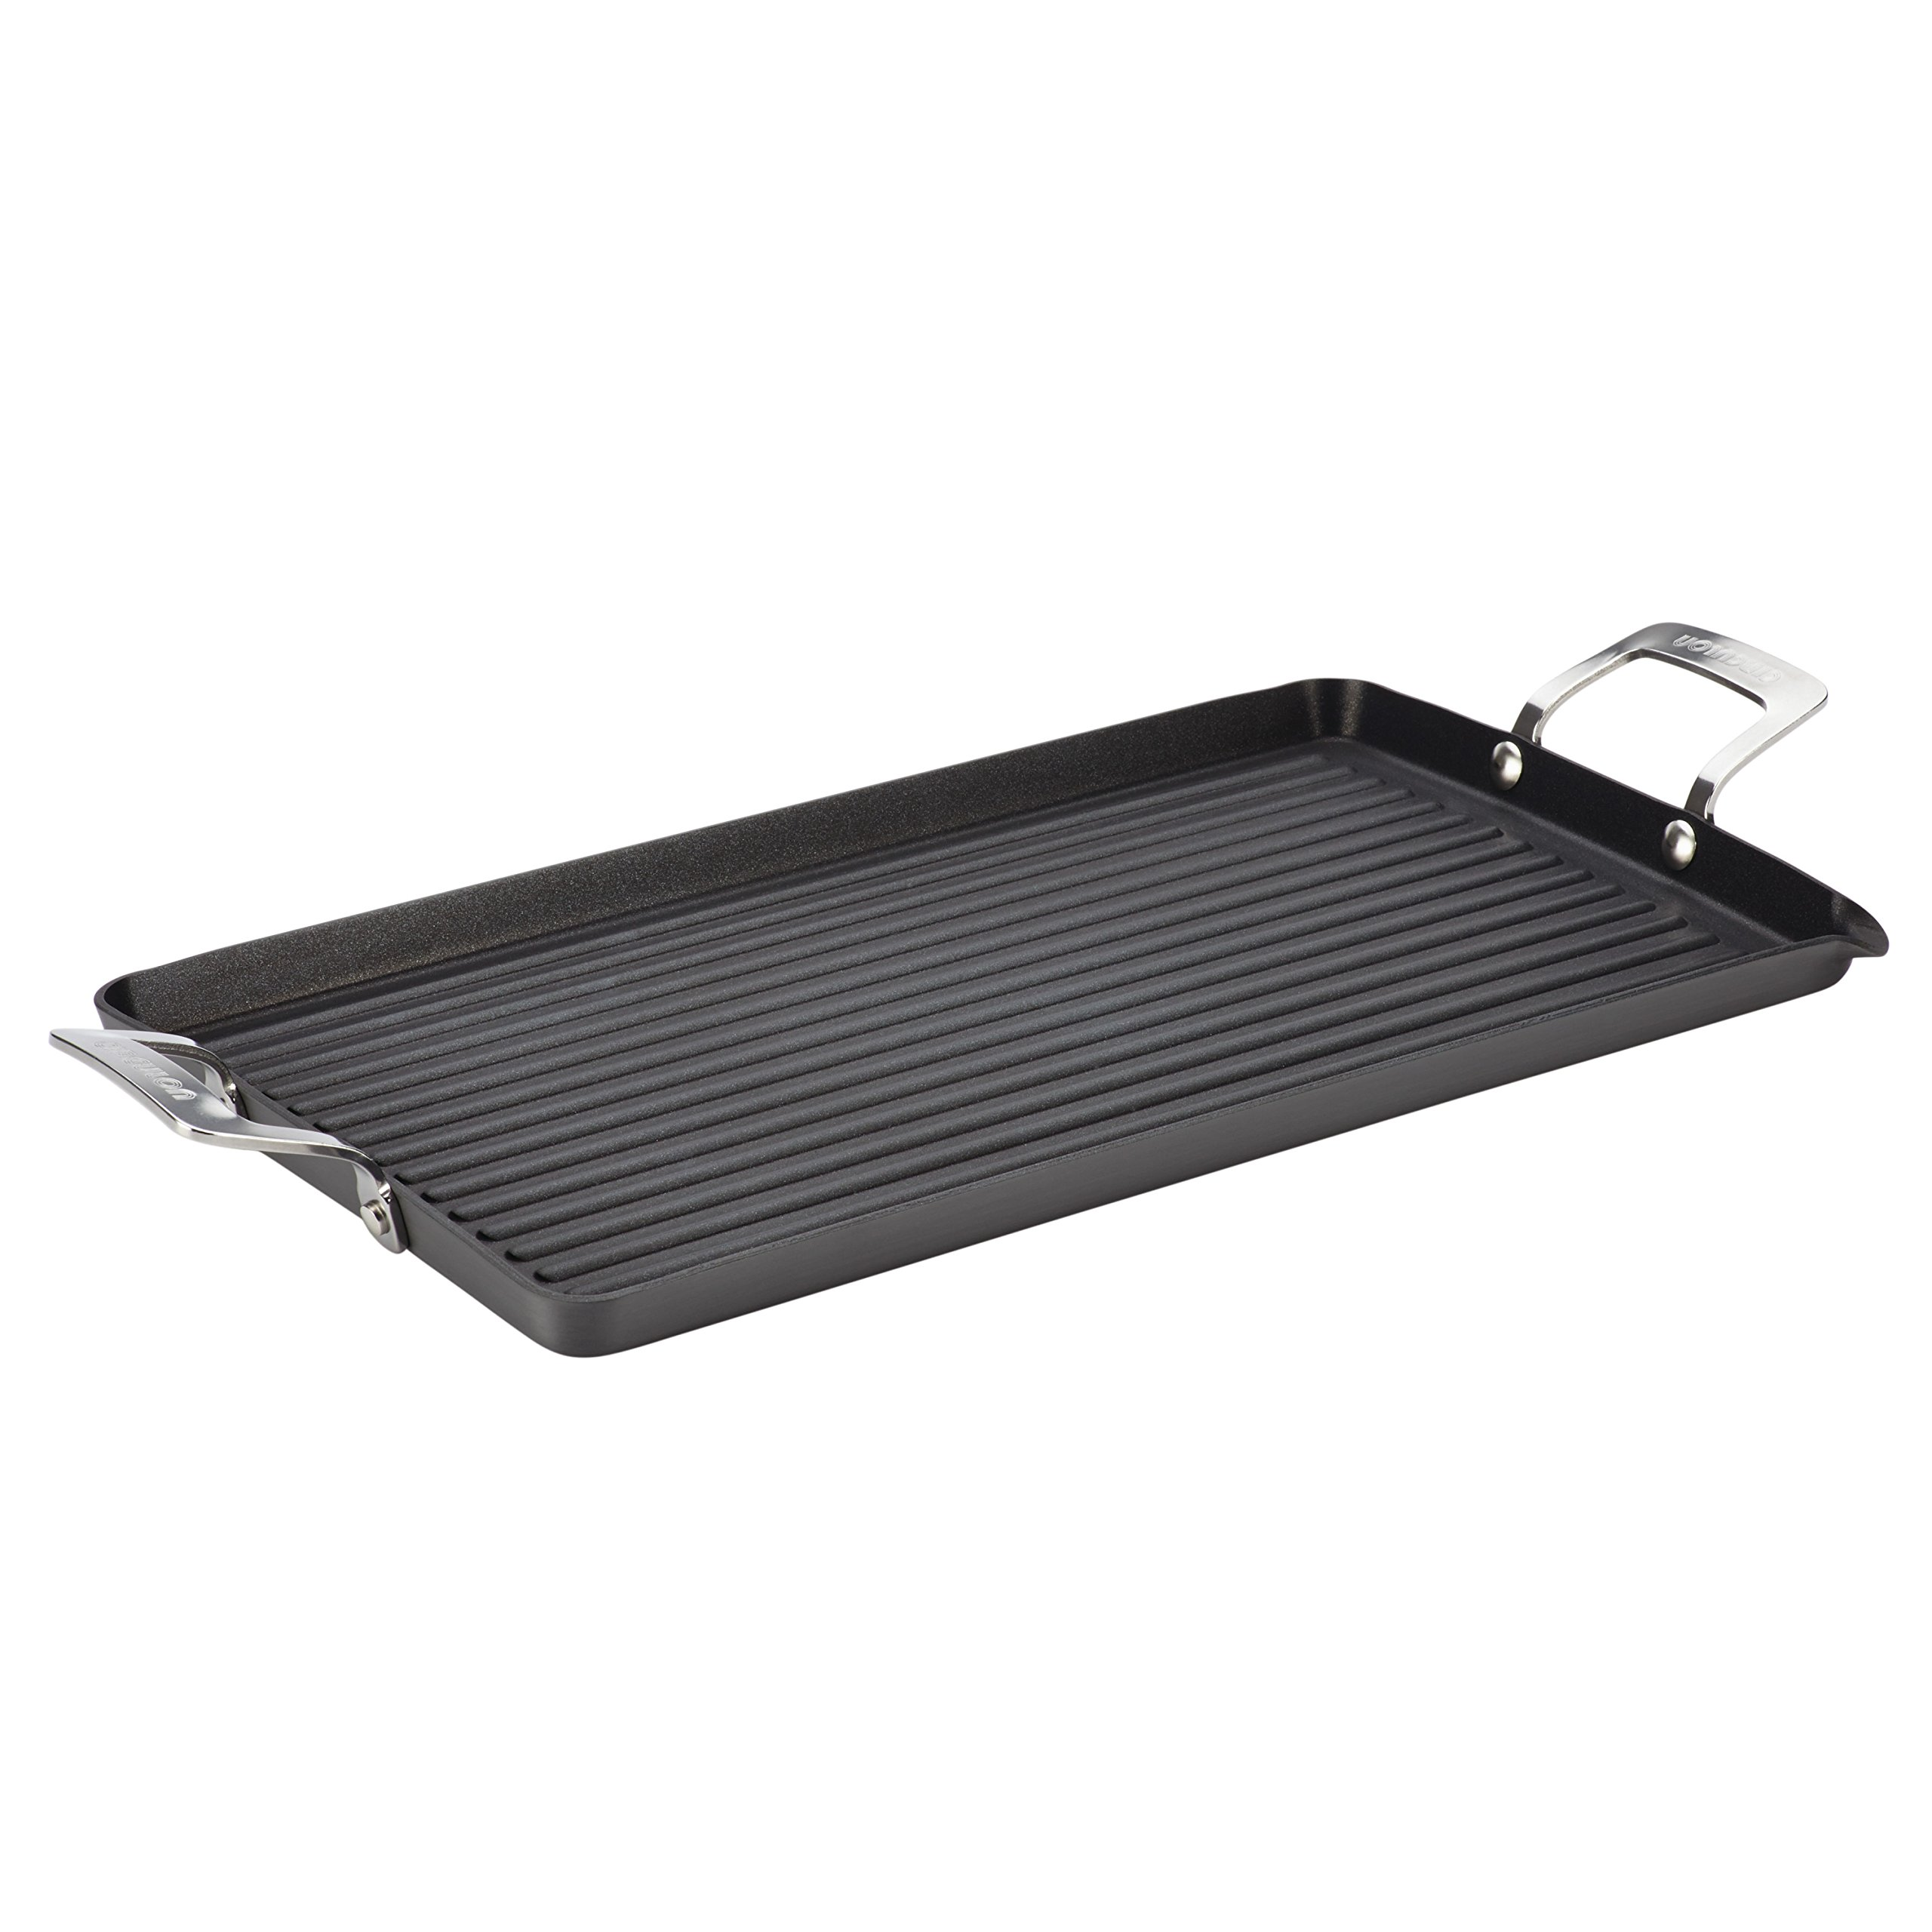 Circulon Hard-Anodized Nonstick 18-Inch by 10-Inch Double Burner Griddle with Pour Spout